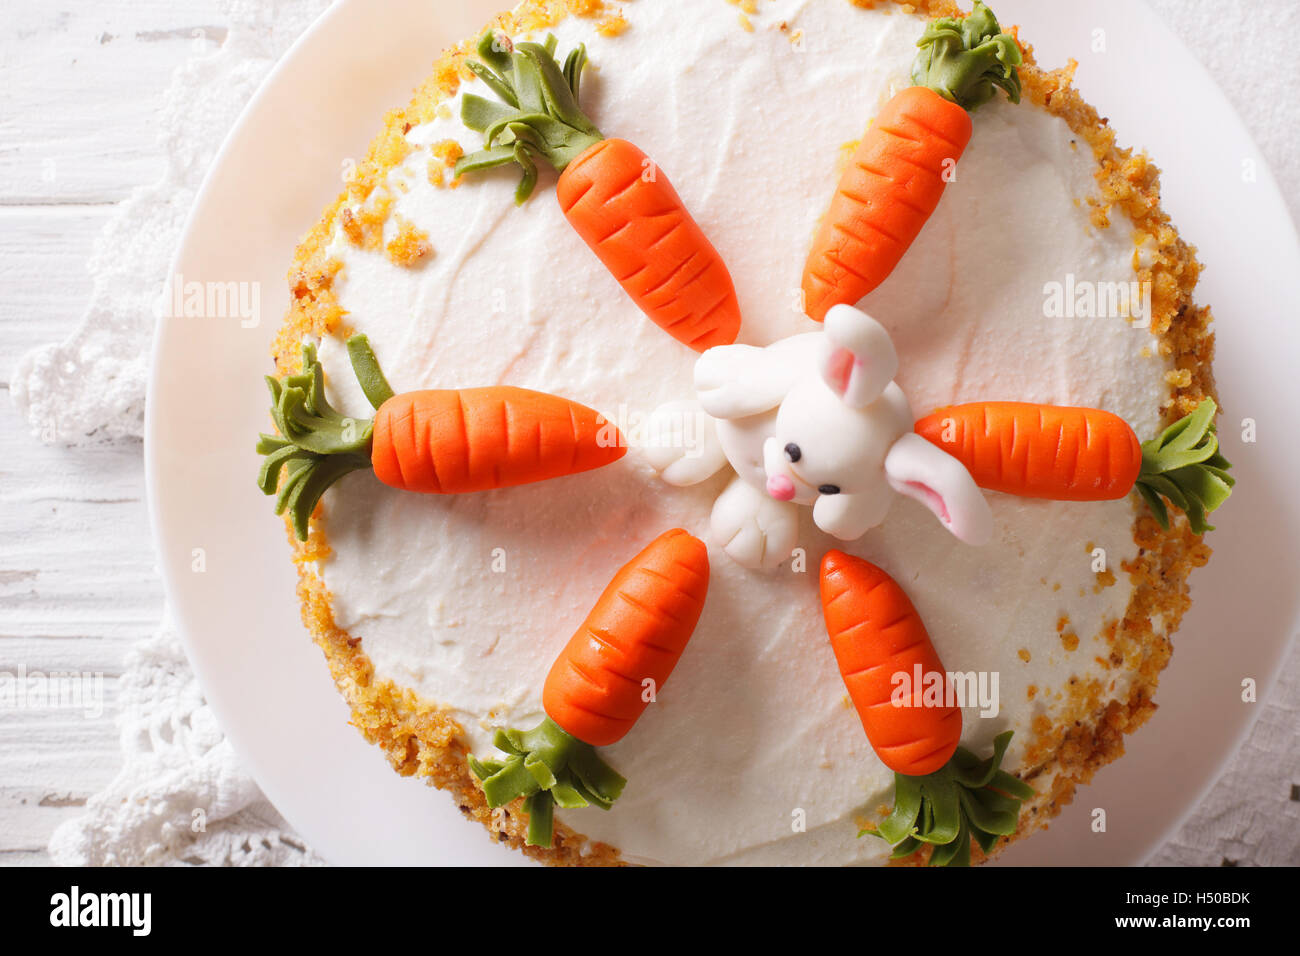 delicious carrot cake with candy bunny close-up on the table. horizontal top view - Stock Image